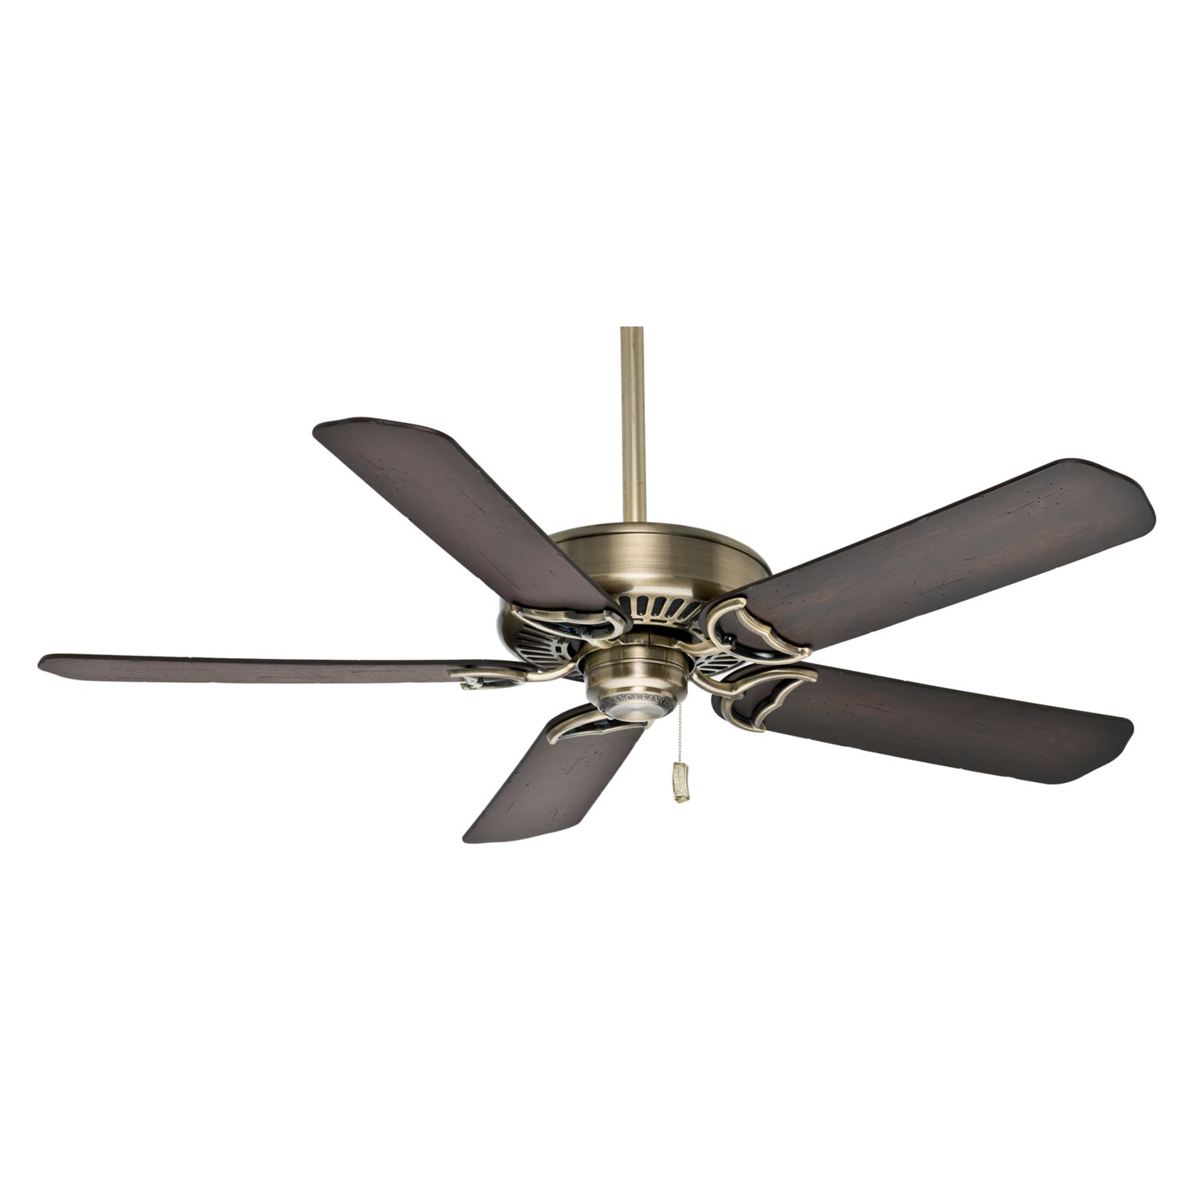 Casablanca Fan Company 55026 Ceiling Fan In Antique Brass